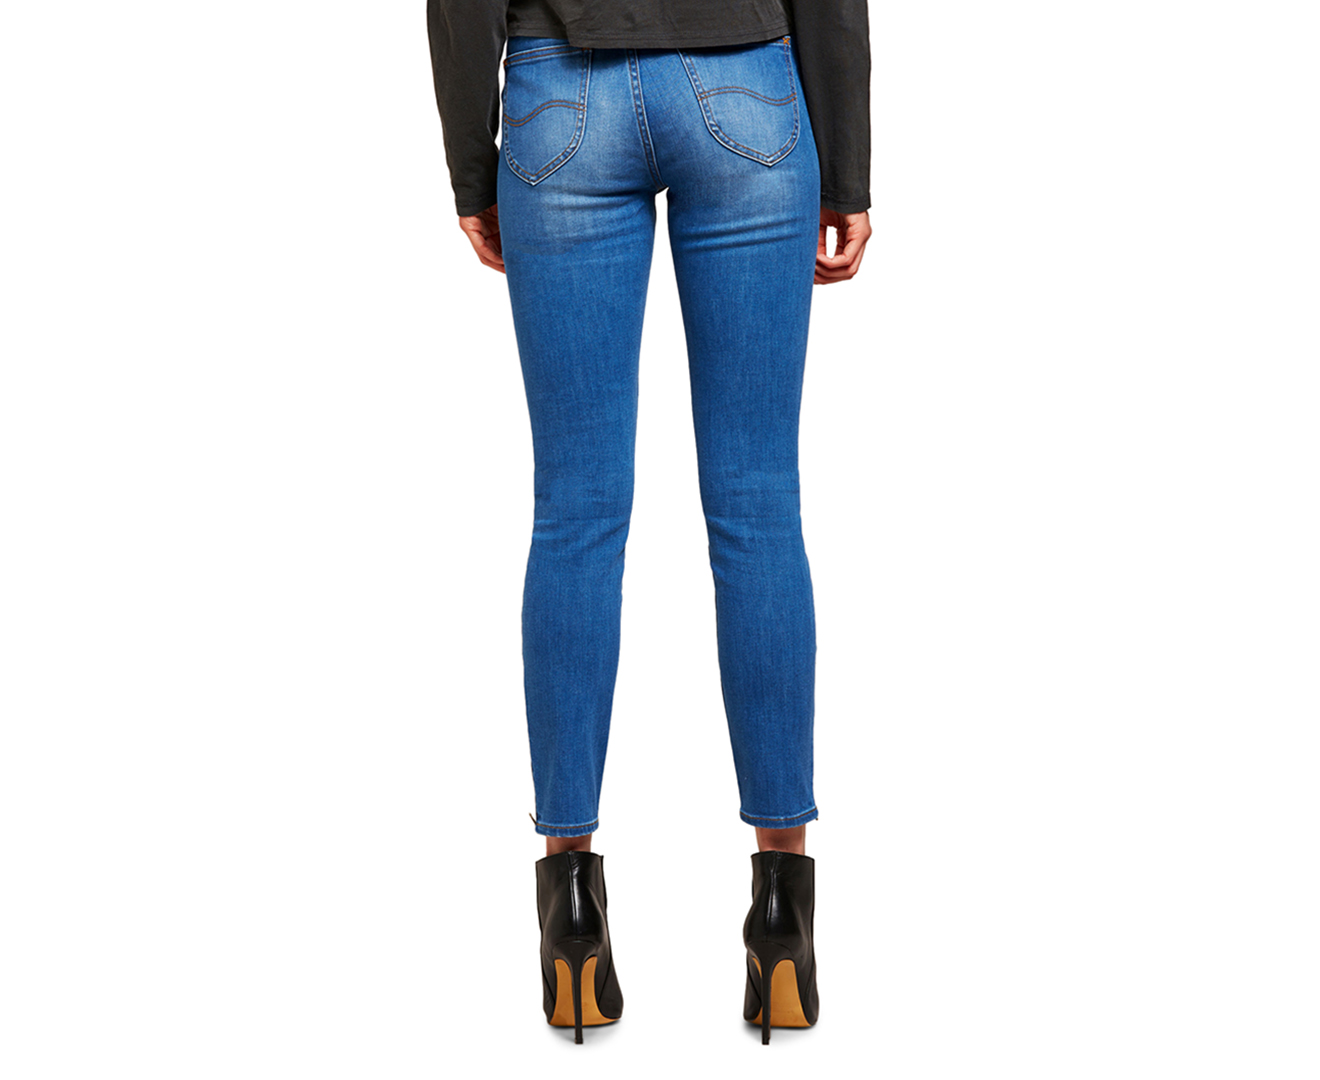 free shipping 06683 01fa5 Lee Women s High Licks Crop Jeans - Orion Blue   Catch.com.au